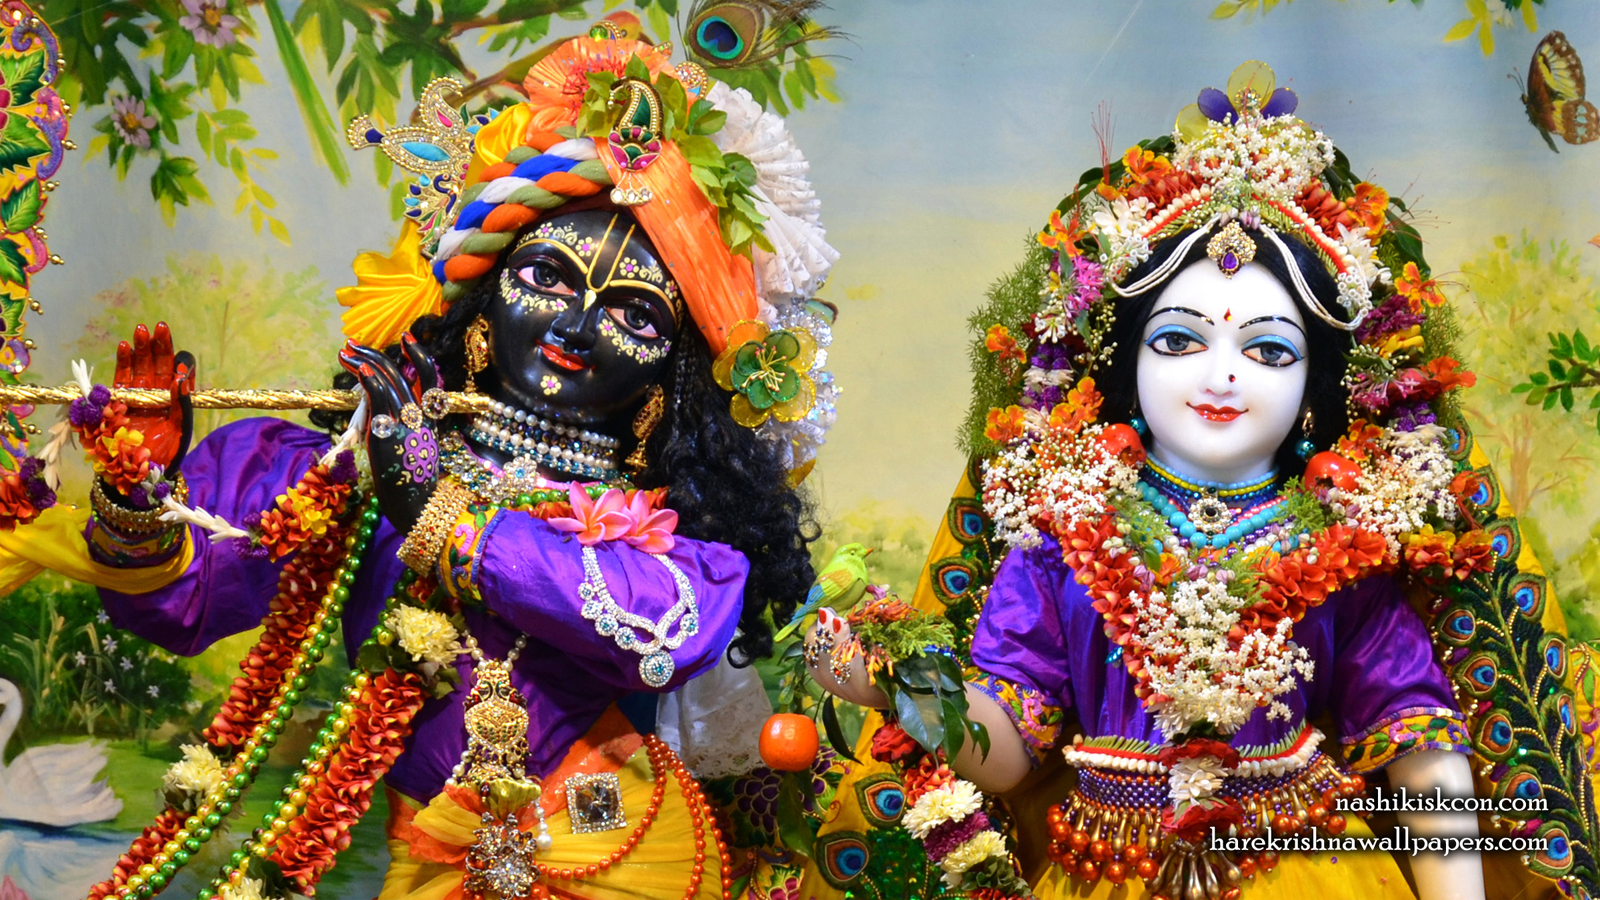 Sri Sri Radha Madan Gopal Close up Wallpaper (010) Size 1600x900 Download